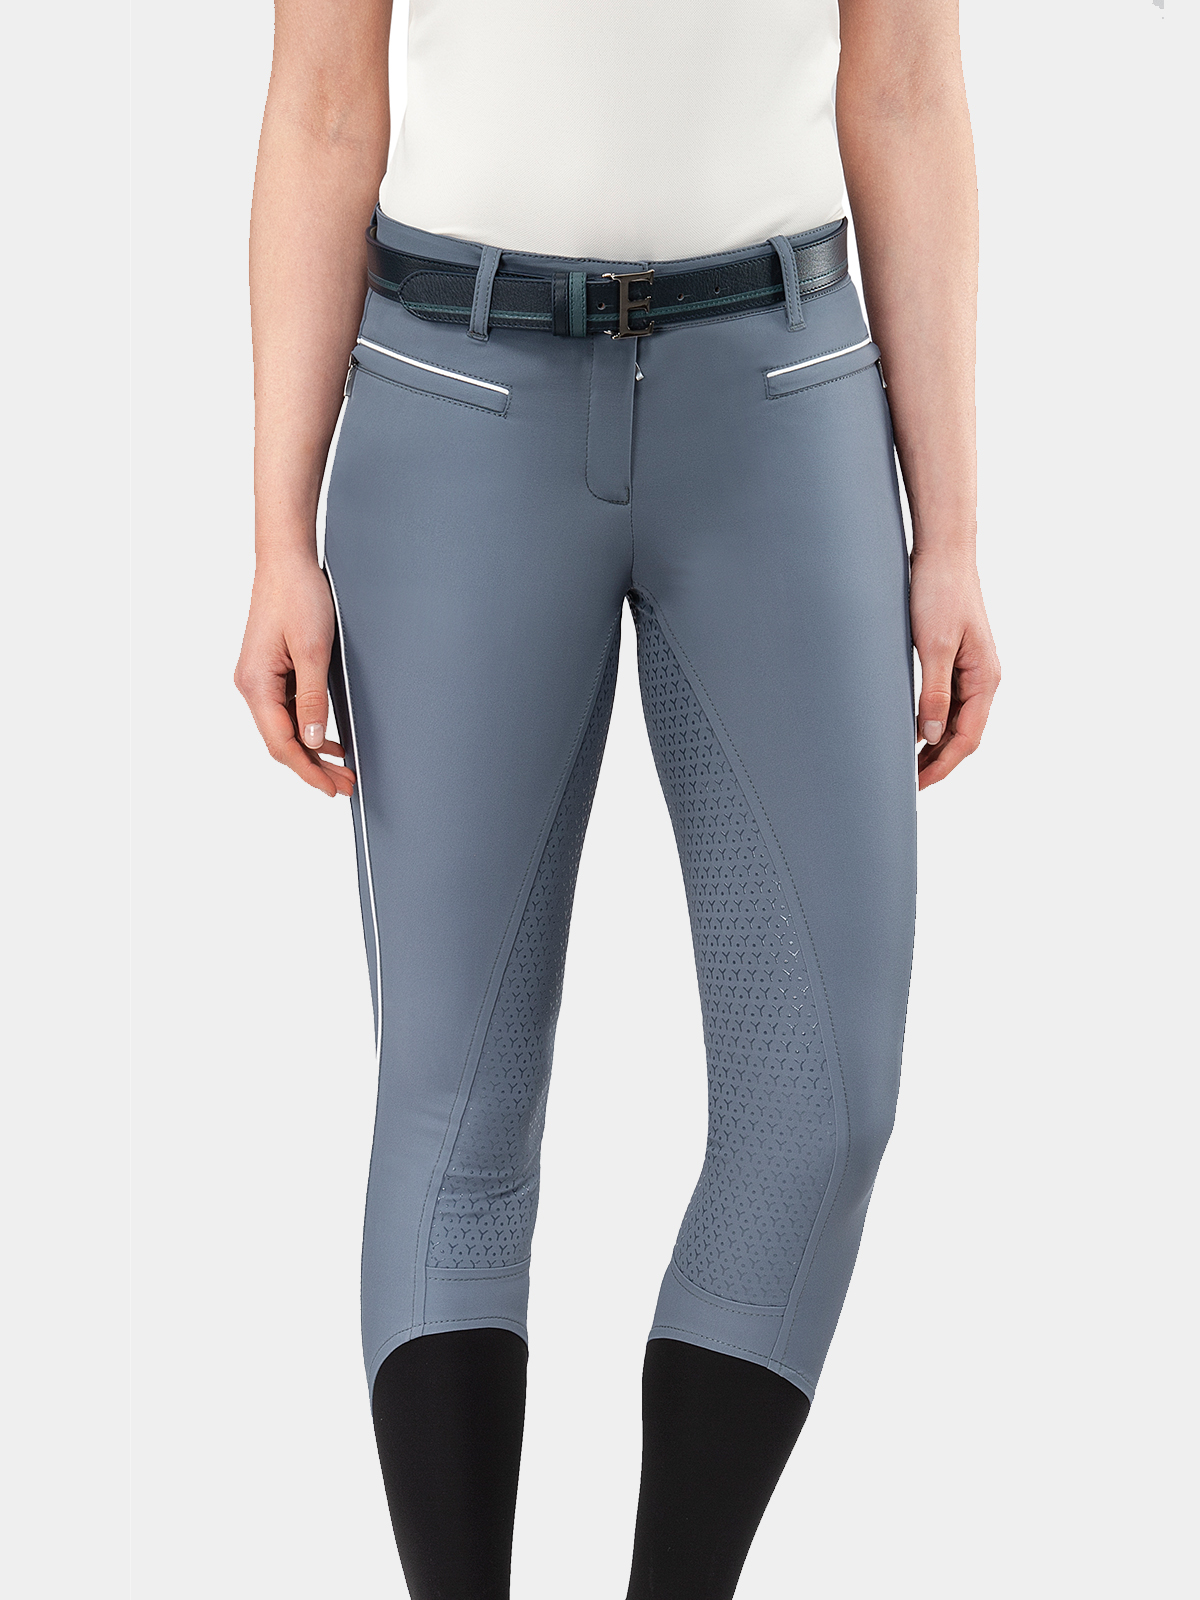 EILISE WOMEN'S FULL SEAT BREECHES WITH GRIP IN B-MOVE 1